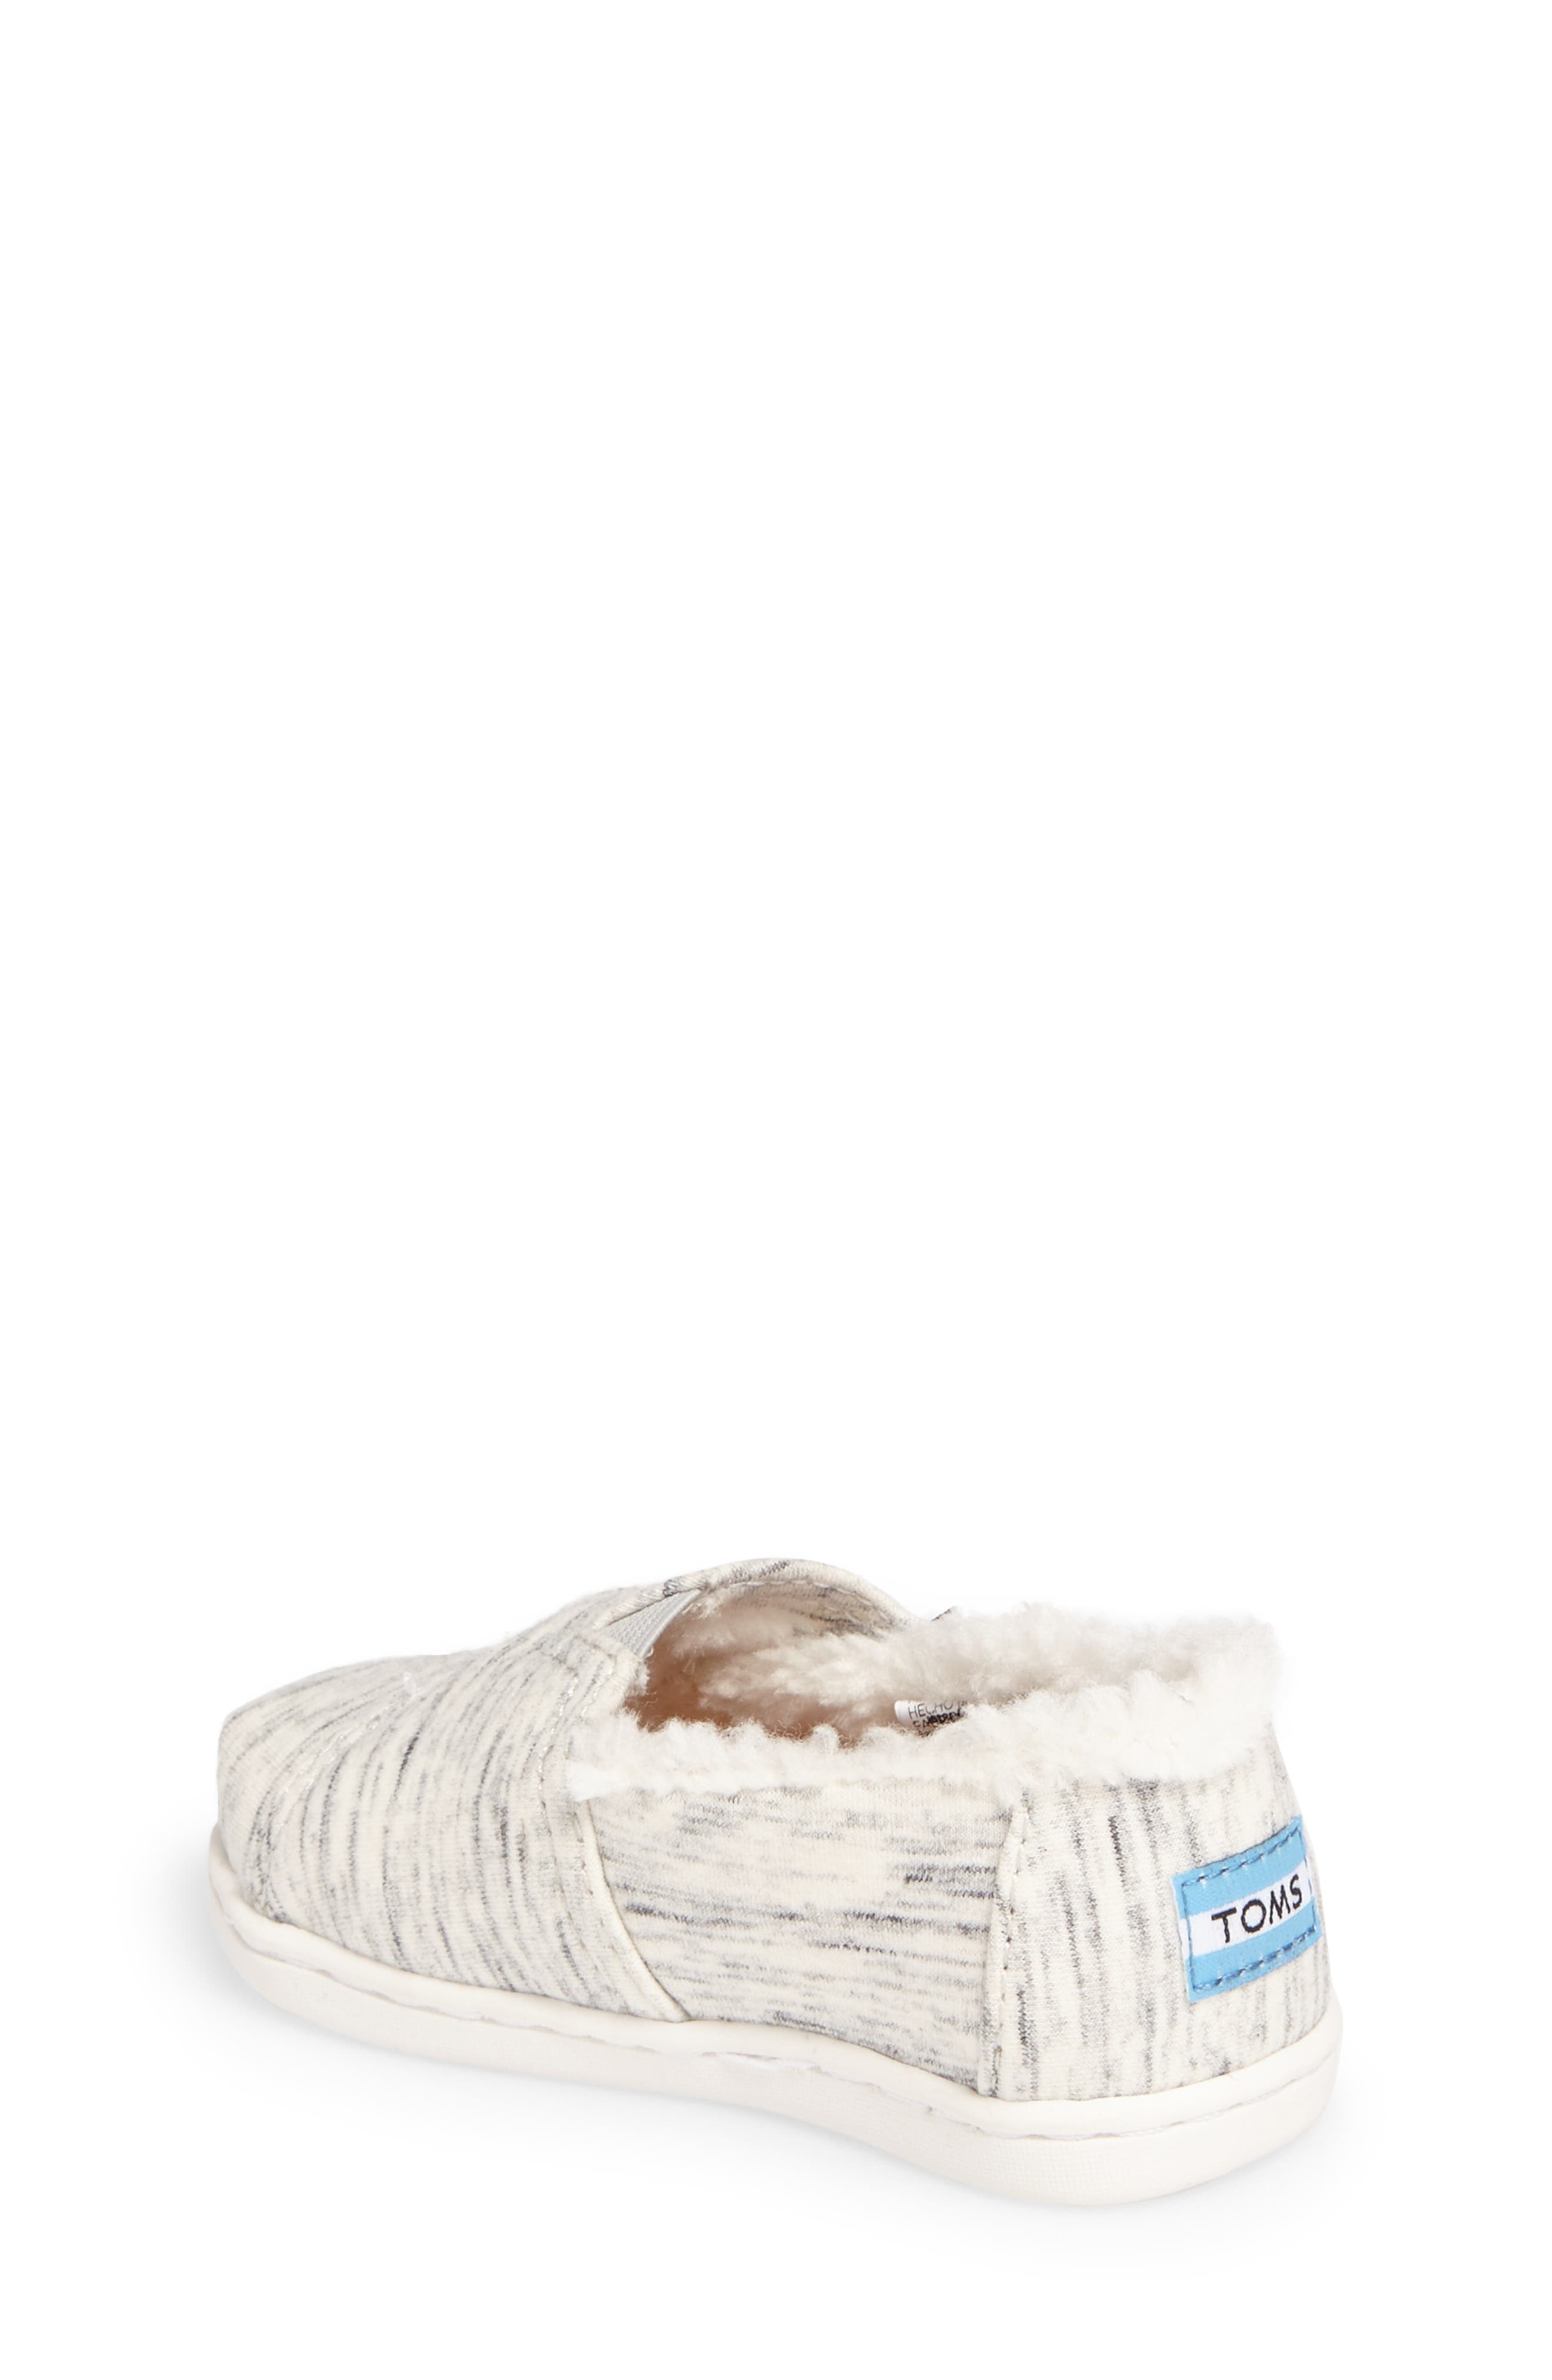 Classic - Tiny Herringbone Faux Shearling Lined Slip-On,                             Alternate thumbnail 2, color,                             BIRCH JERSEY/ FAUX SHEARLING